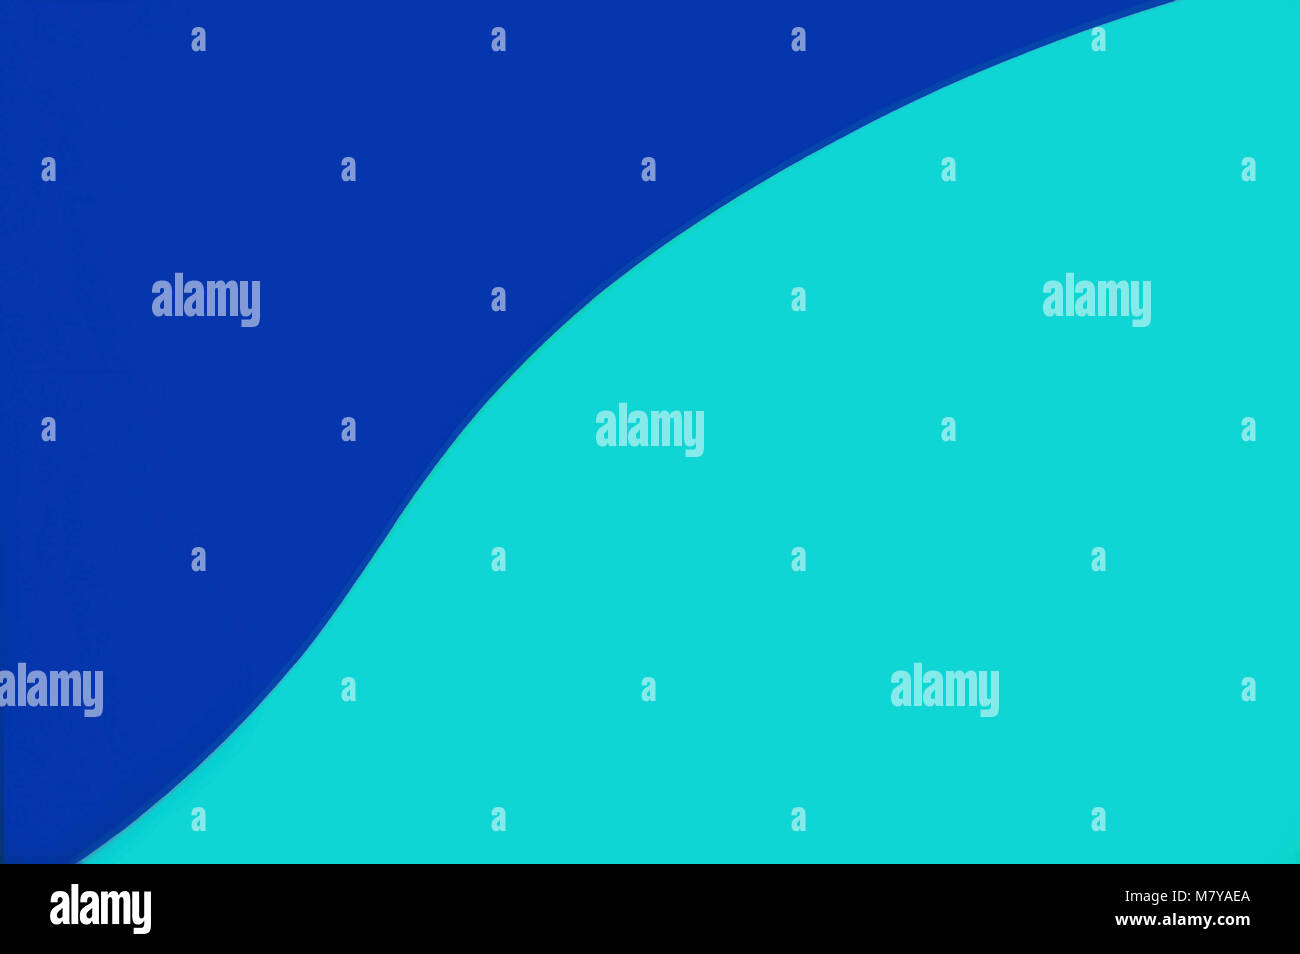 Two shades of blue in this minimalist bold background. - Stock Image